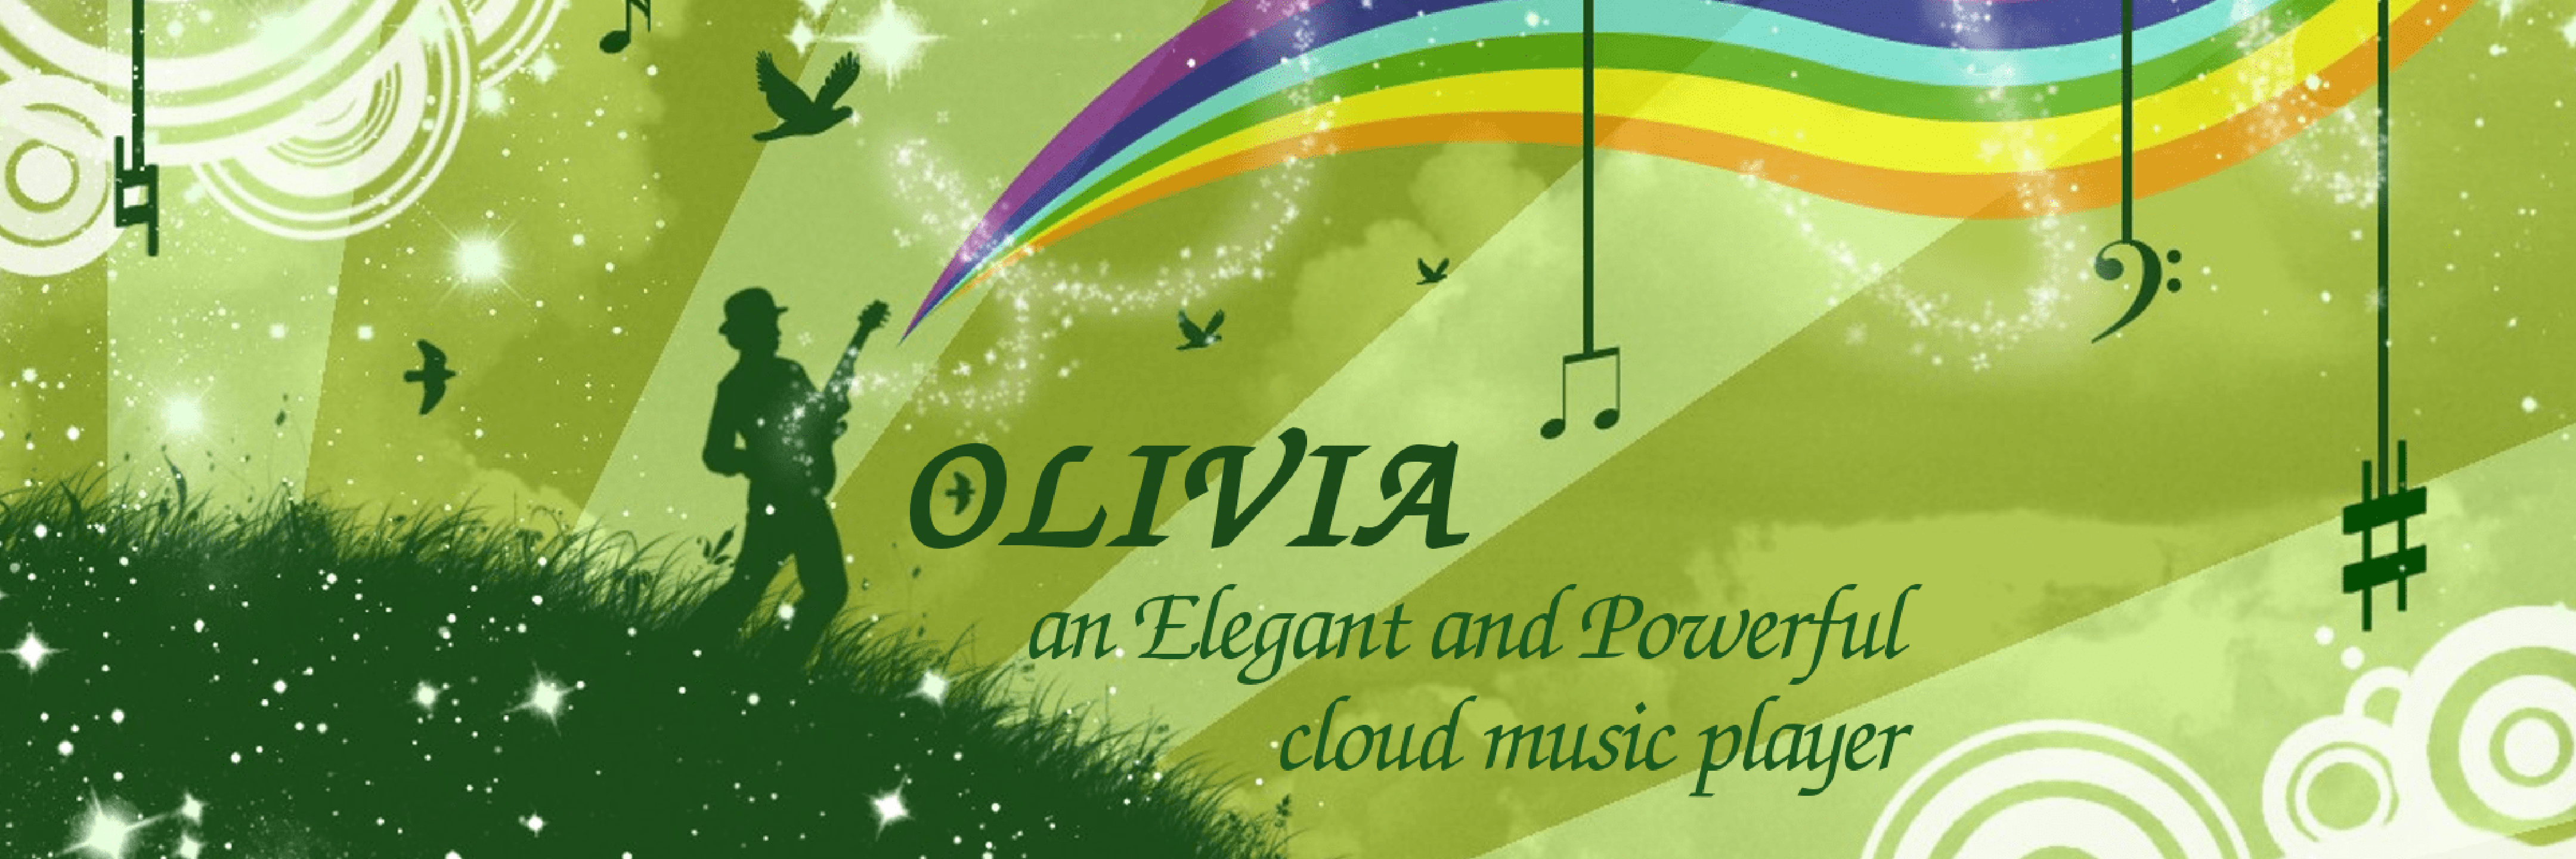 Olivia - Stream/Download Music & Videos banner